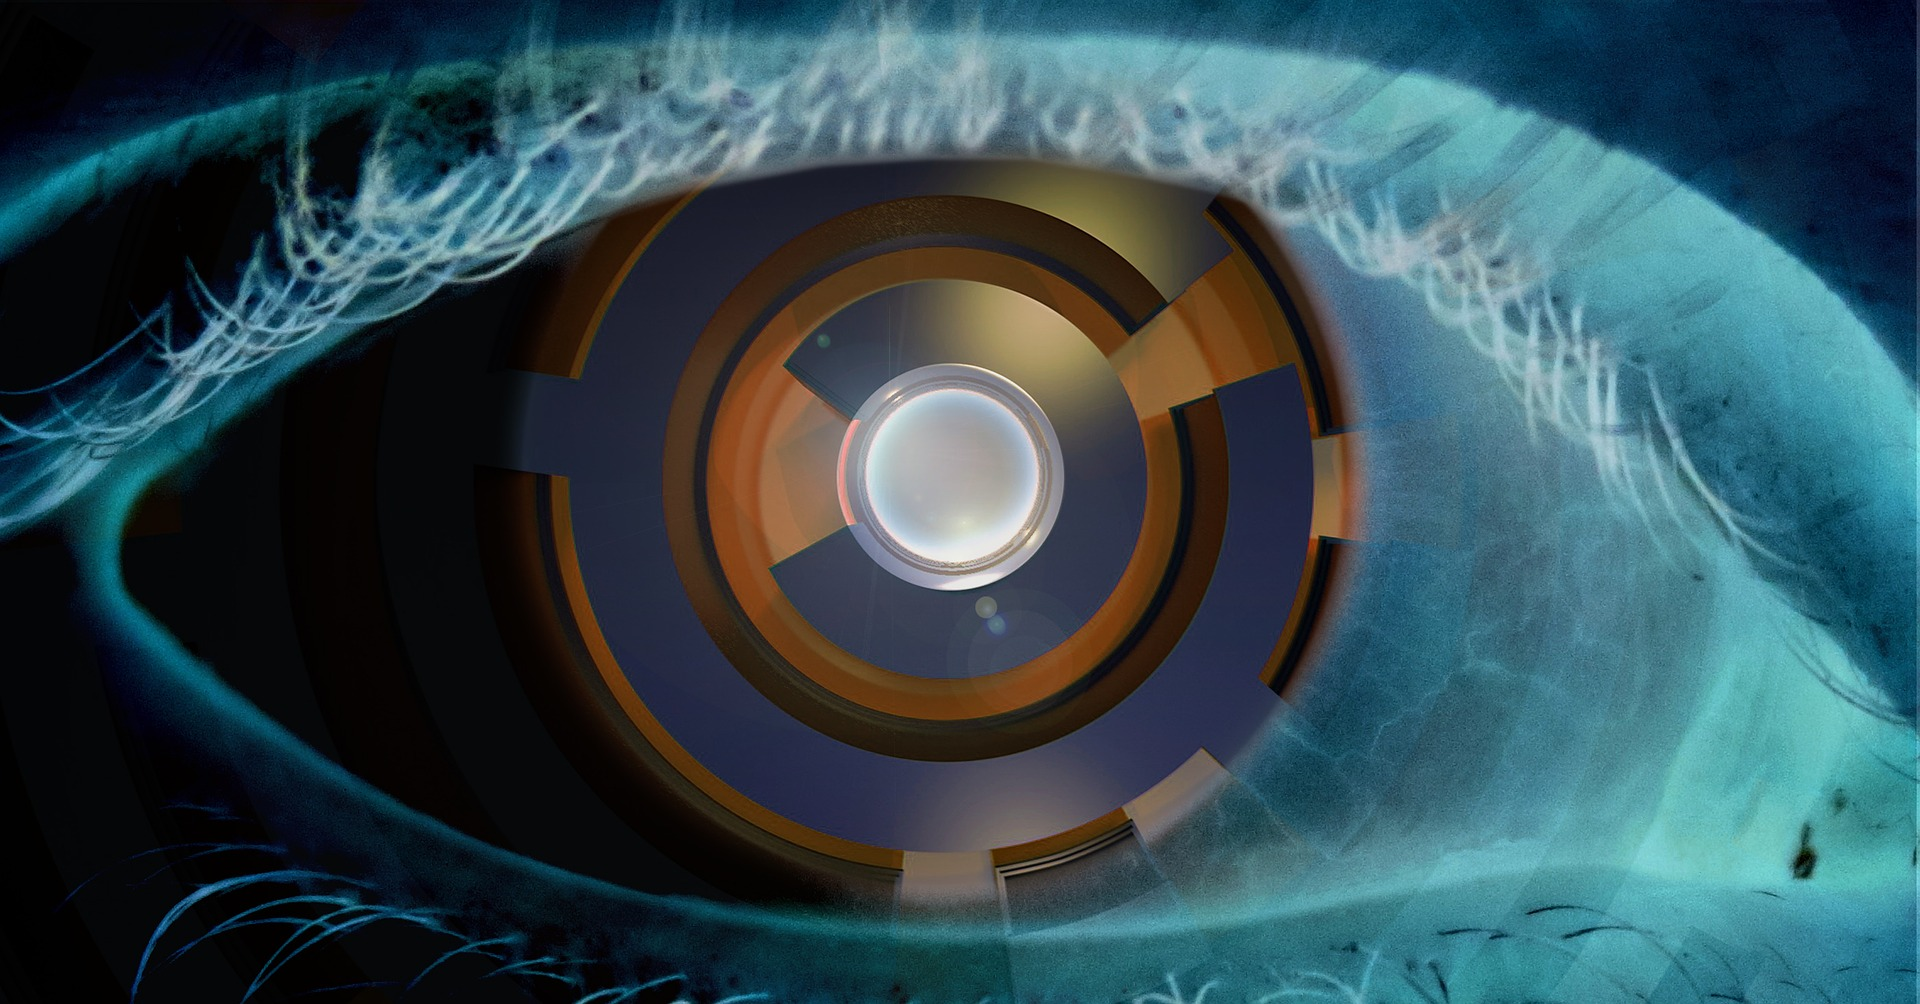 A stylized image of an artificial eye